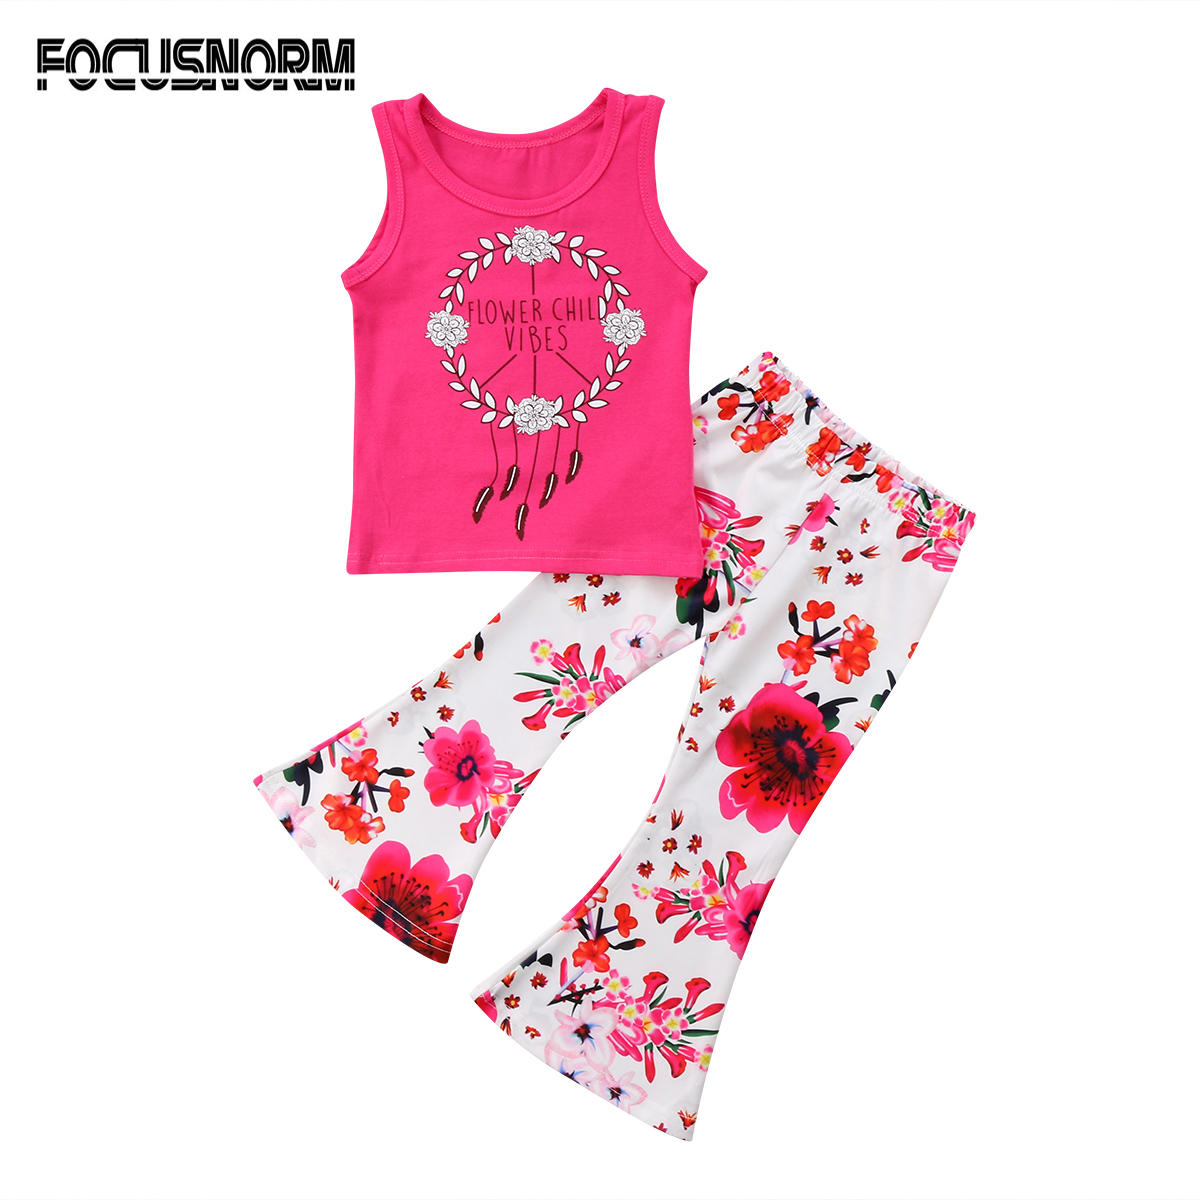 Baby Girls Kids Toddler Girls Printed Sleeveless T-shirt Tops+Floral Long Pants Outfit Clothes 2Pcs 2pcs set toddler kids girls clothes wild heart long sleeve t shirt tops pant outfit cute girl children suit 1 6y